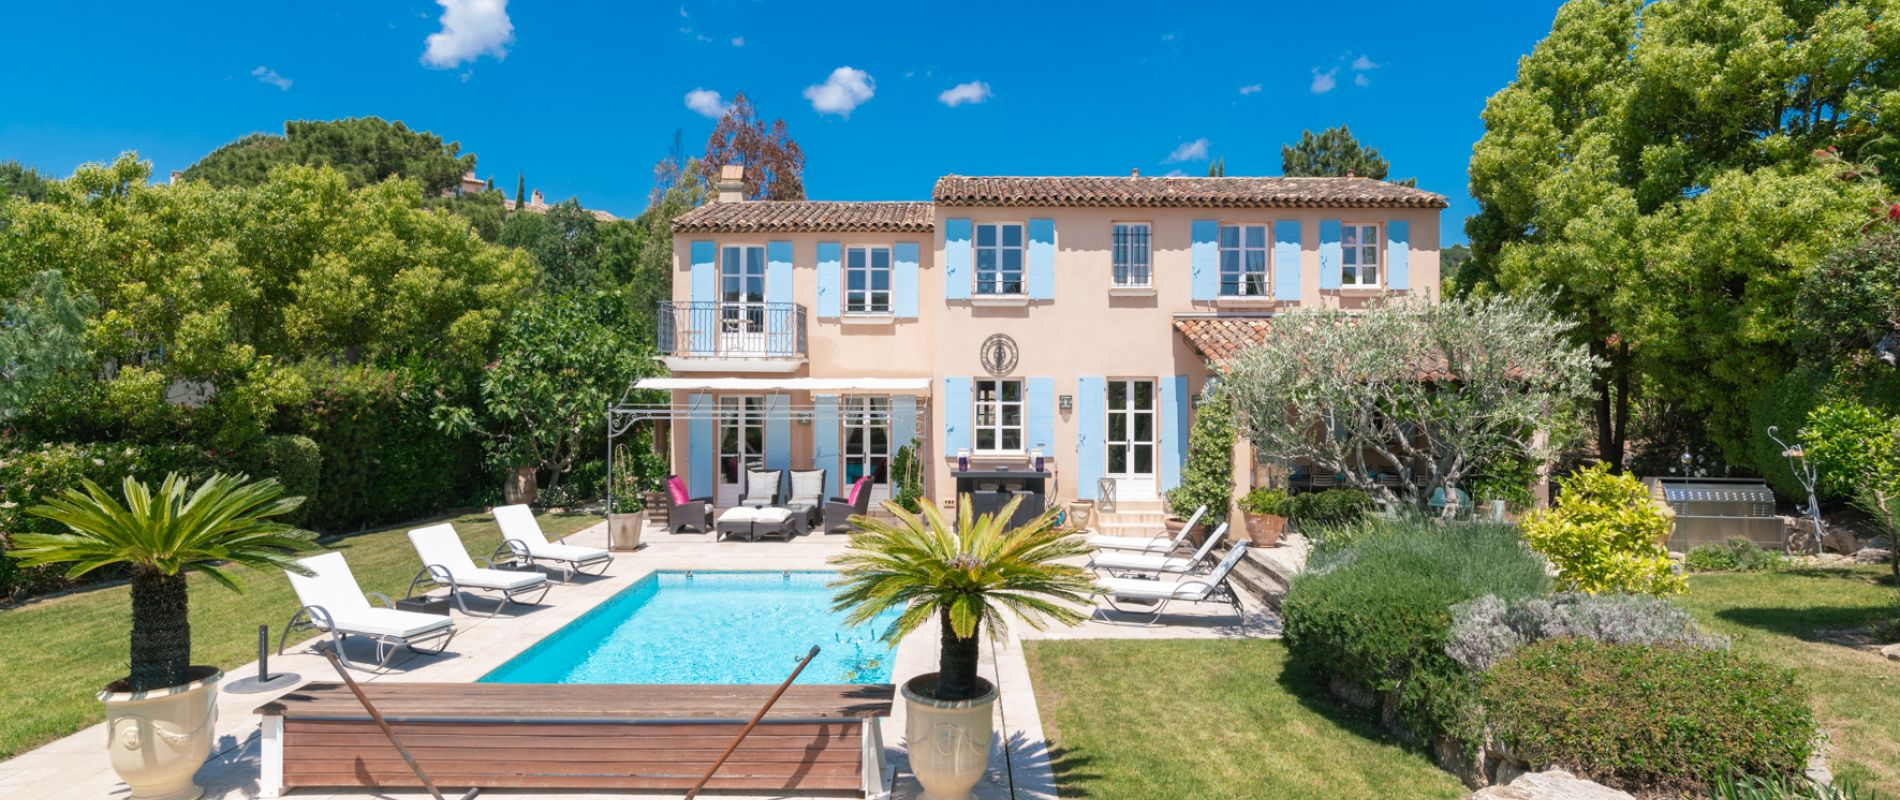 villa golf saint-tropez